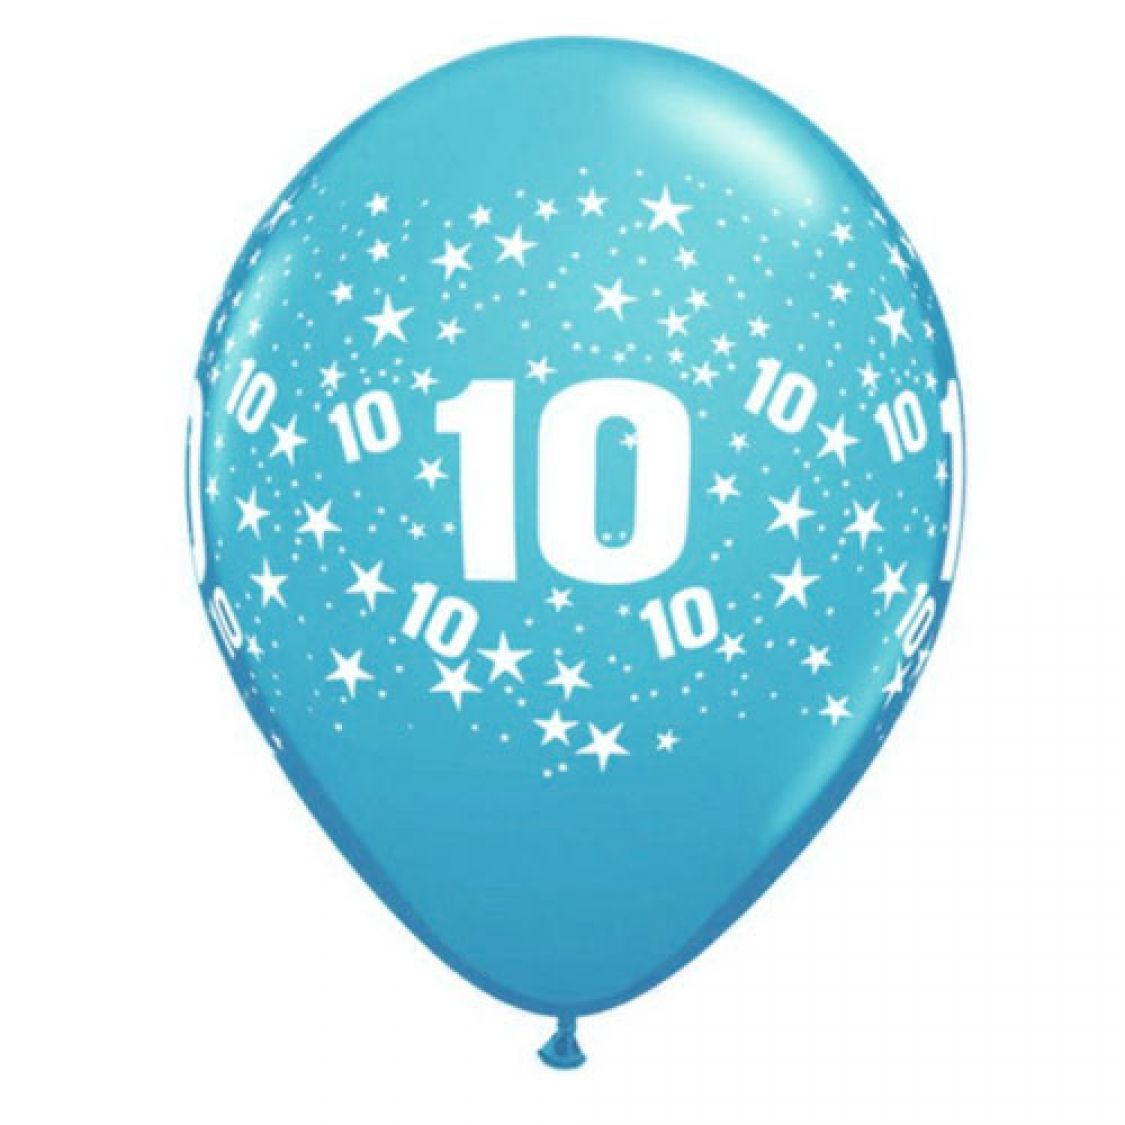 Ballon 10 ans qualatex assortiment tropical - Image ballon anniversaire ...